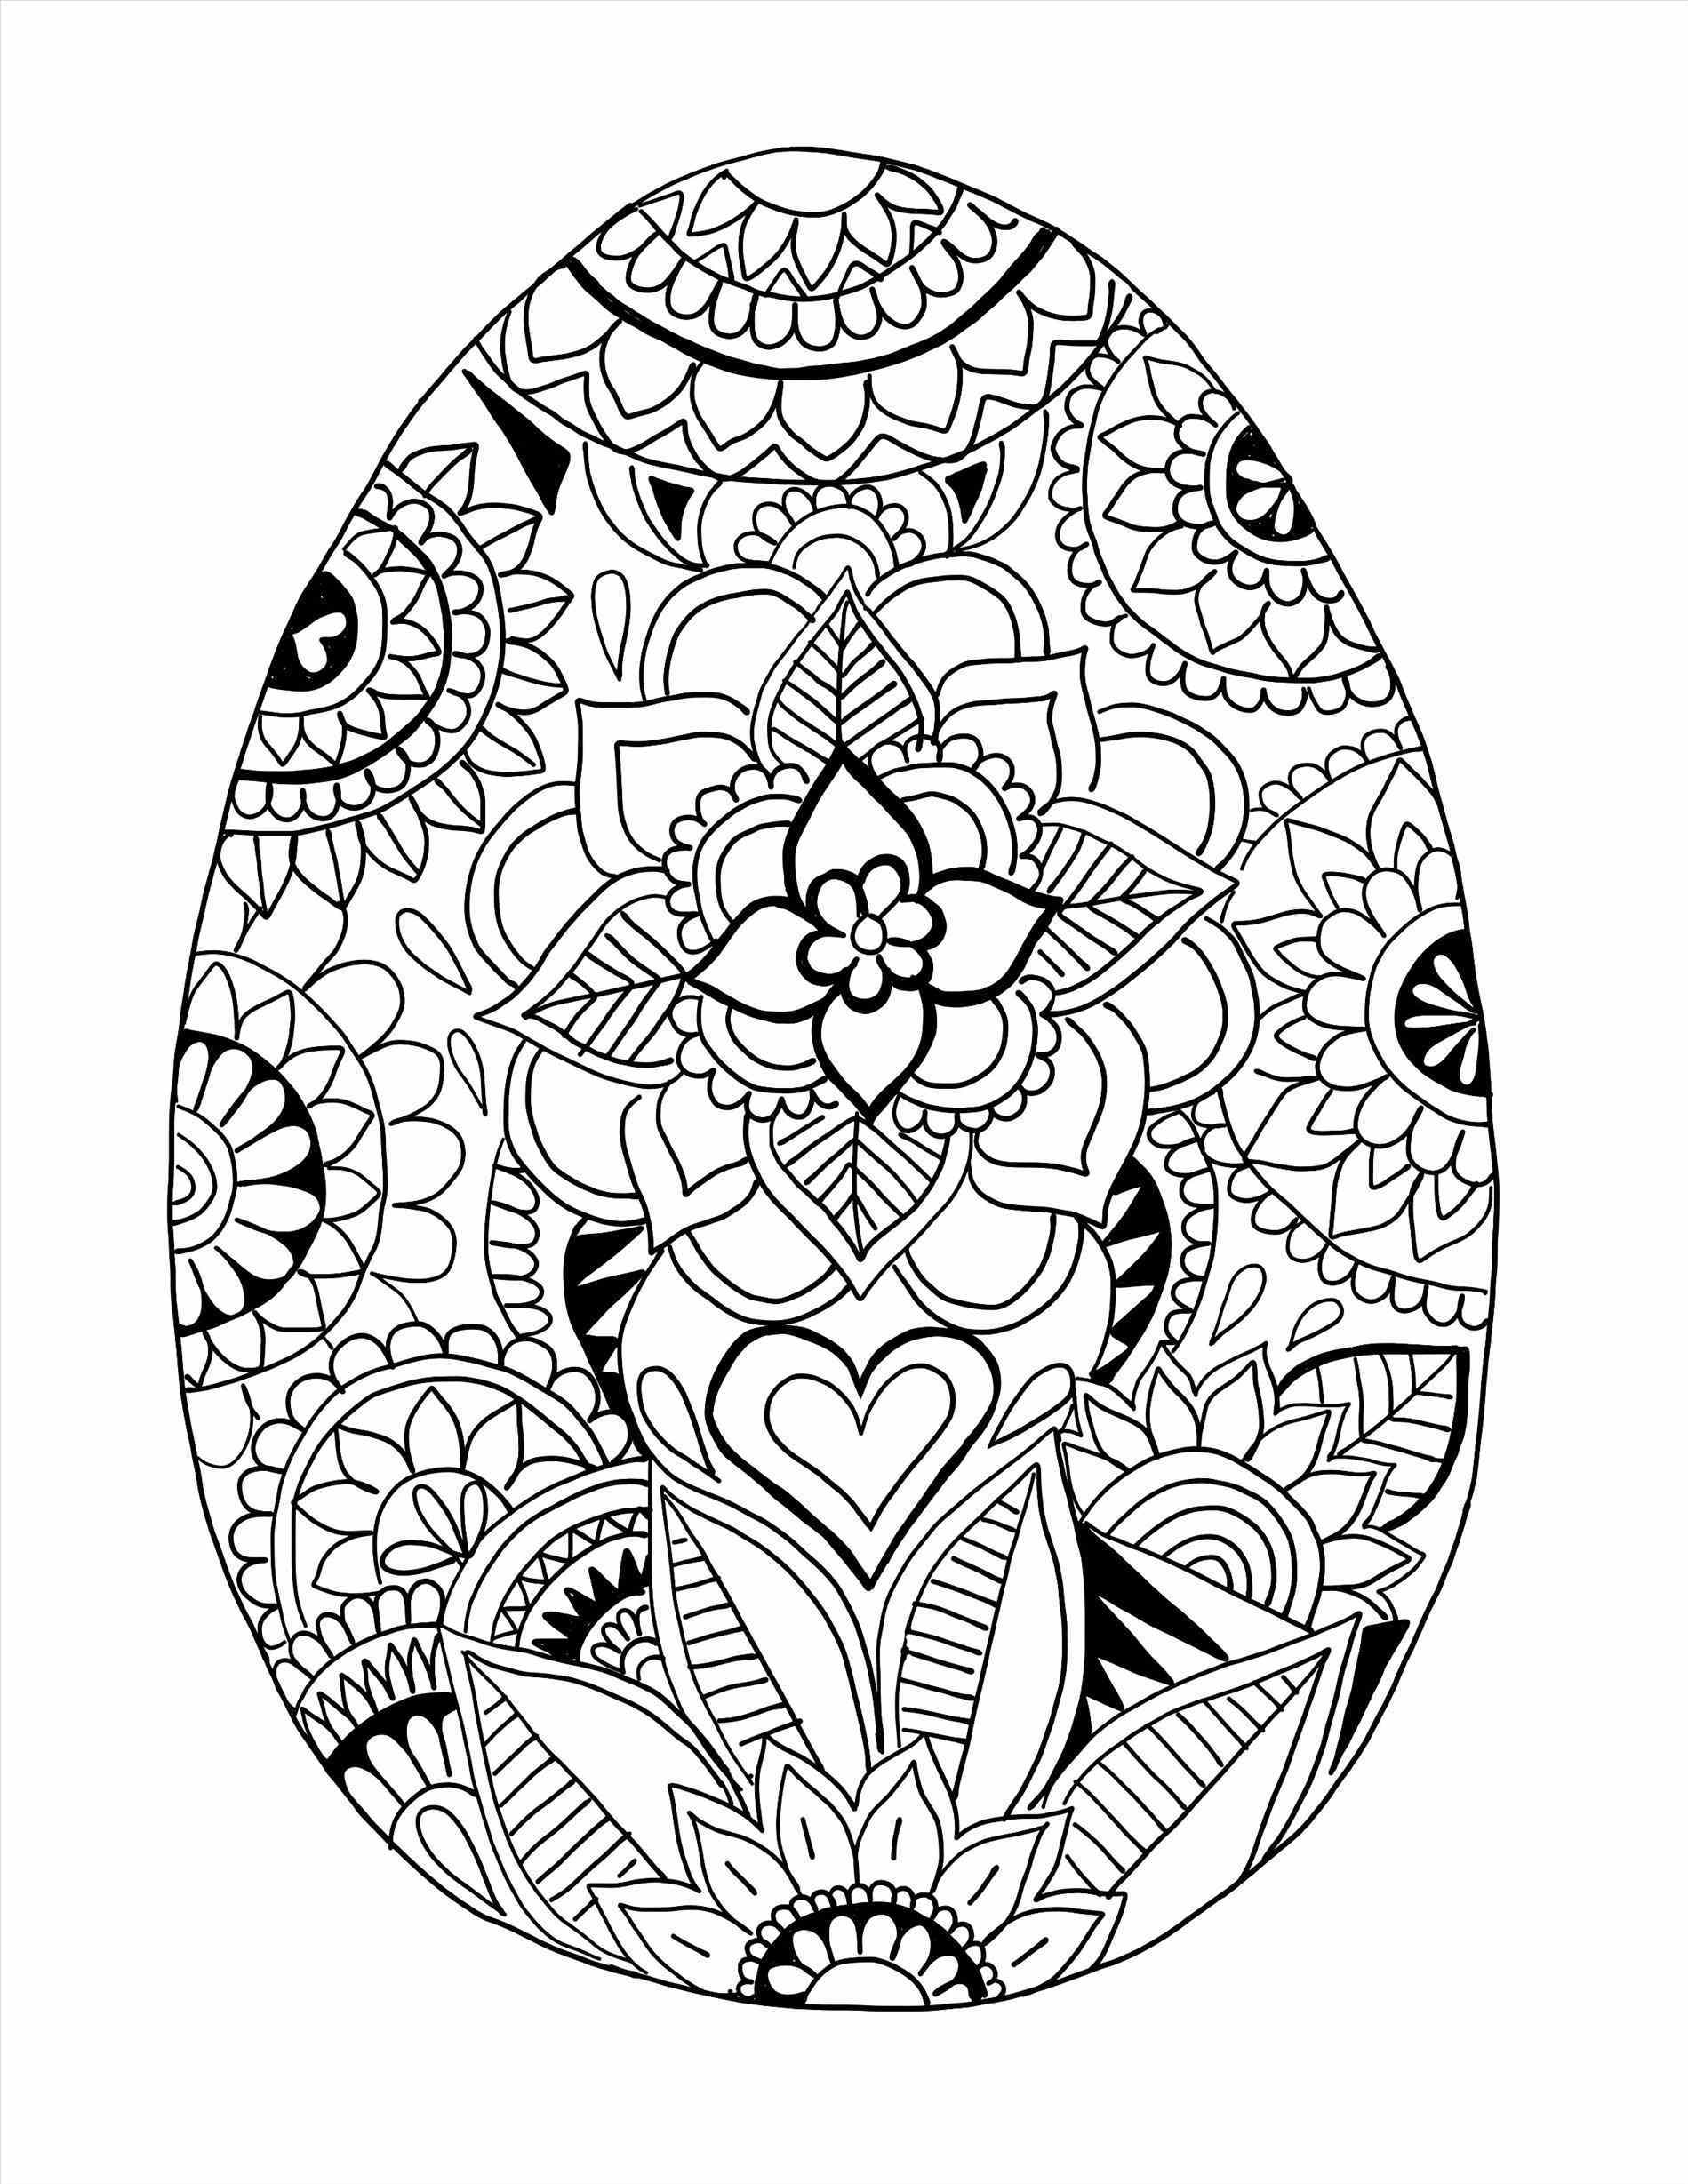 Detailed Easter Egg Coloring Pages At Getcolorings